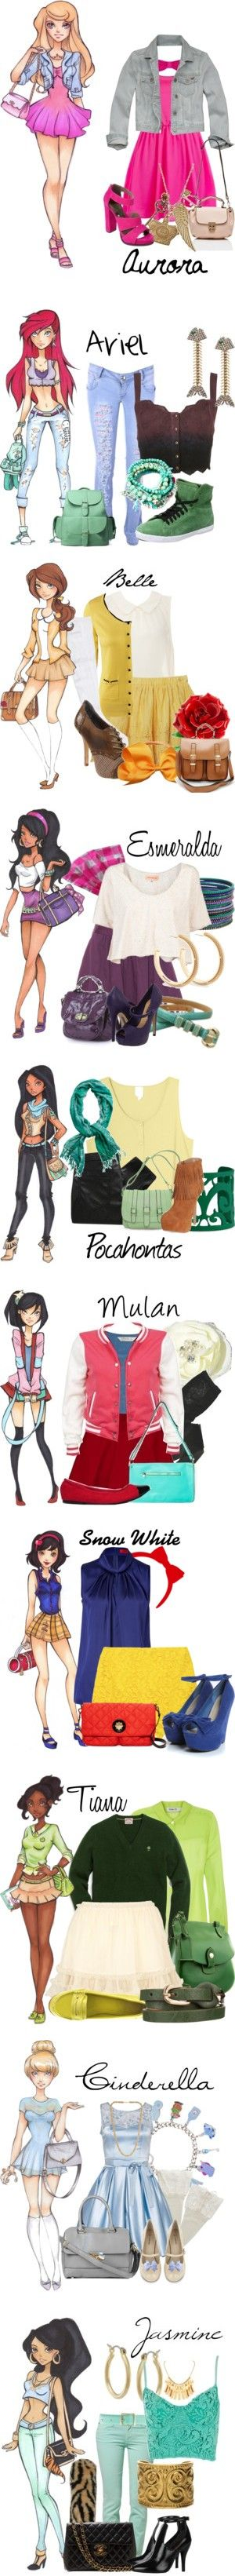 """Disney High"" by disneykid95 on Polyvore"